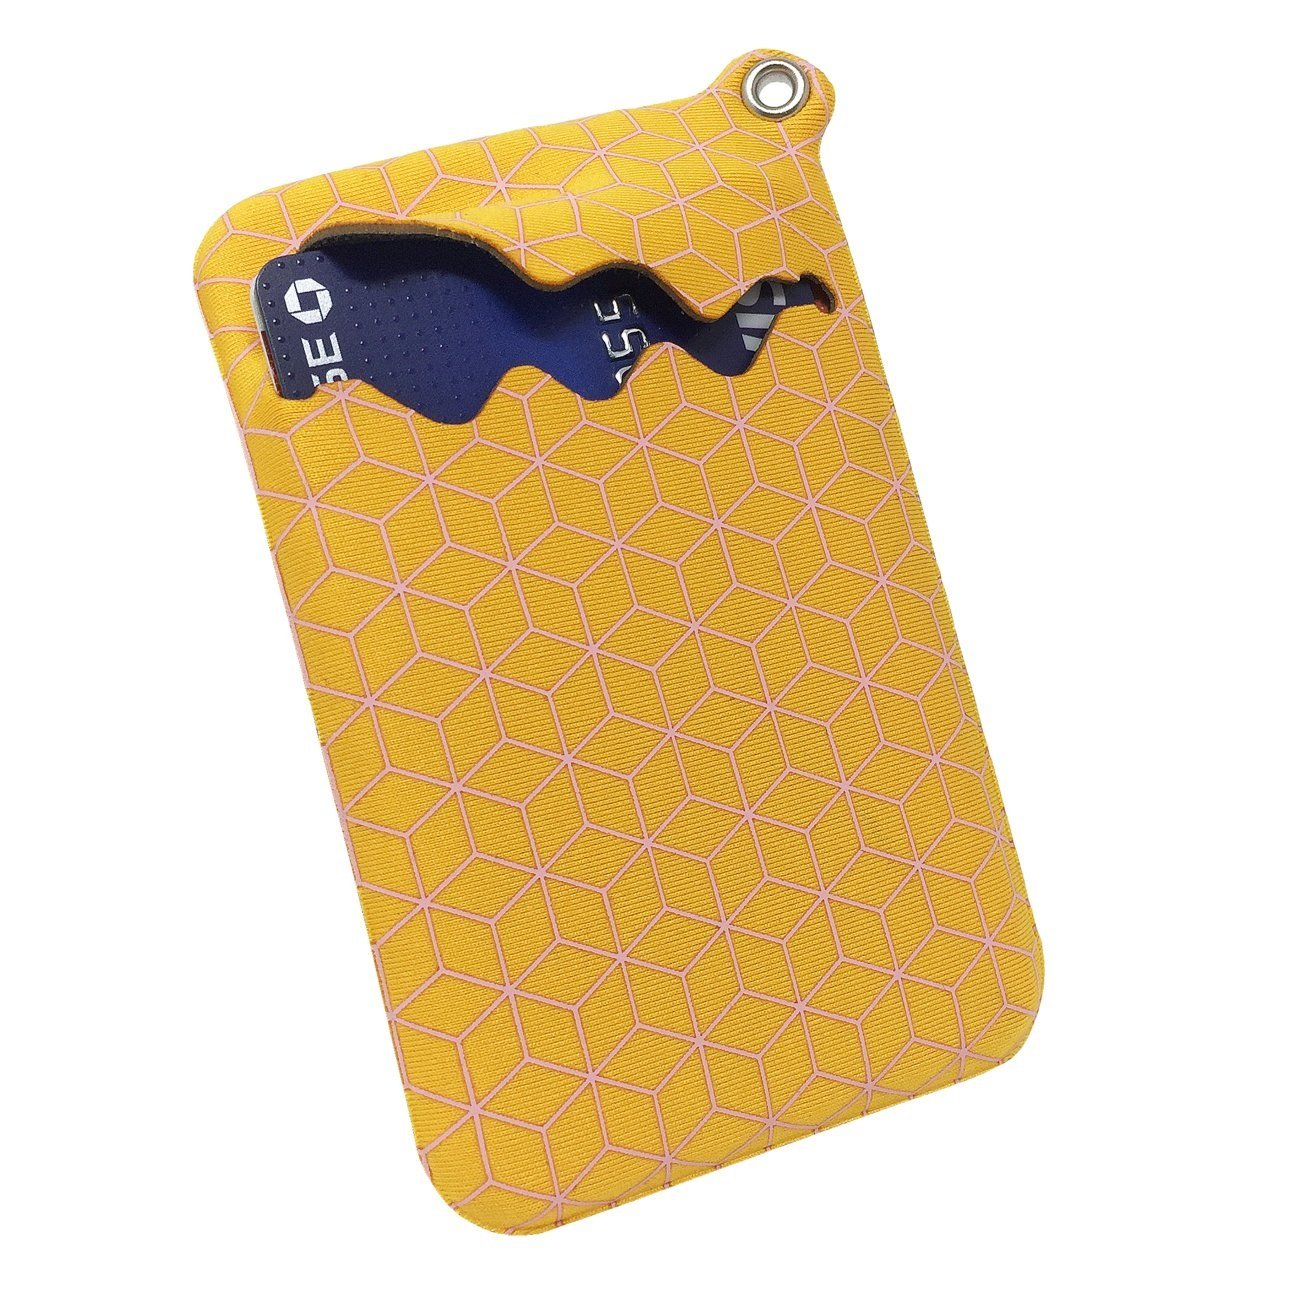 NIFTY5 Fabric Pocket Neoprene Minimalist Slim Wallet Card Holder with Neck Strap Compact Pocket Design (Cube Yellow)